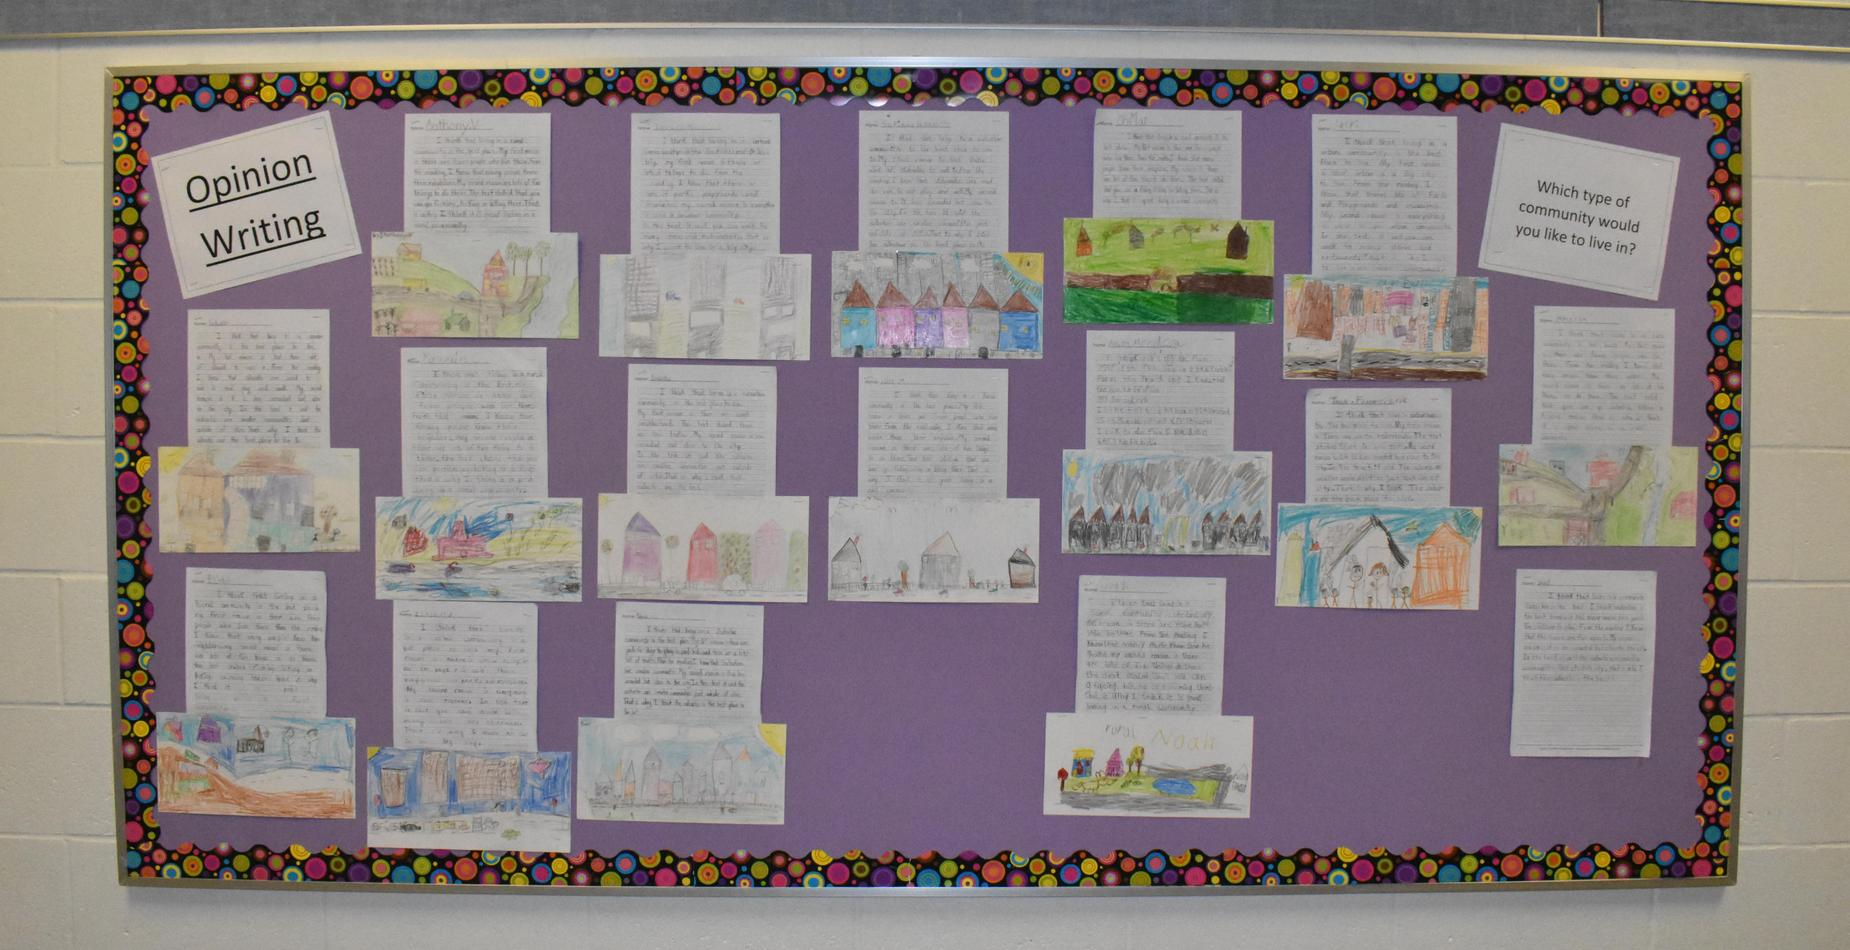 A collection of second graders opinion writing pieces about which community they would prefer to live in.